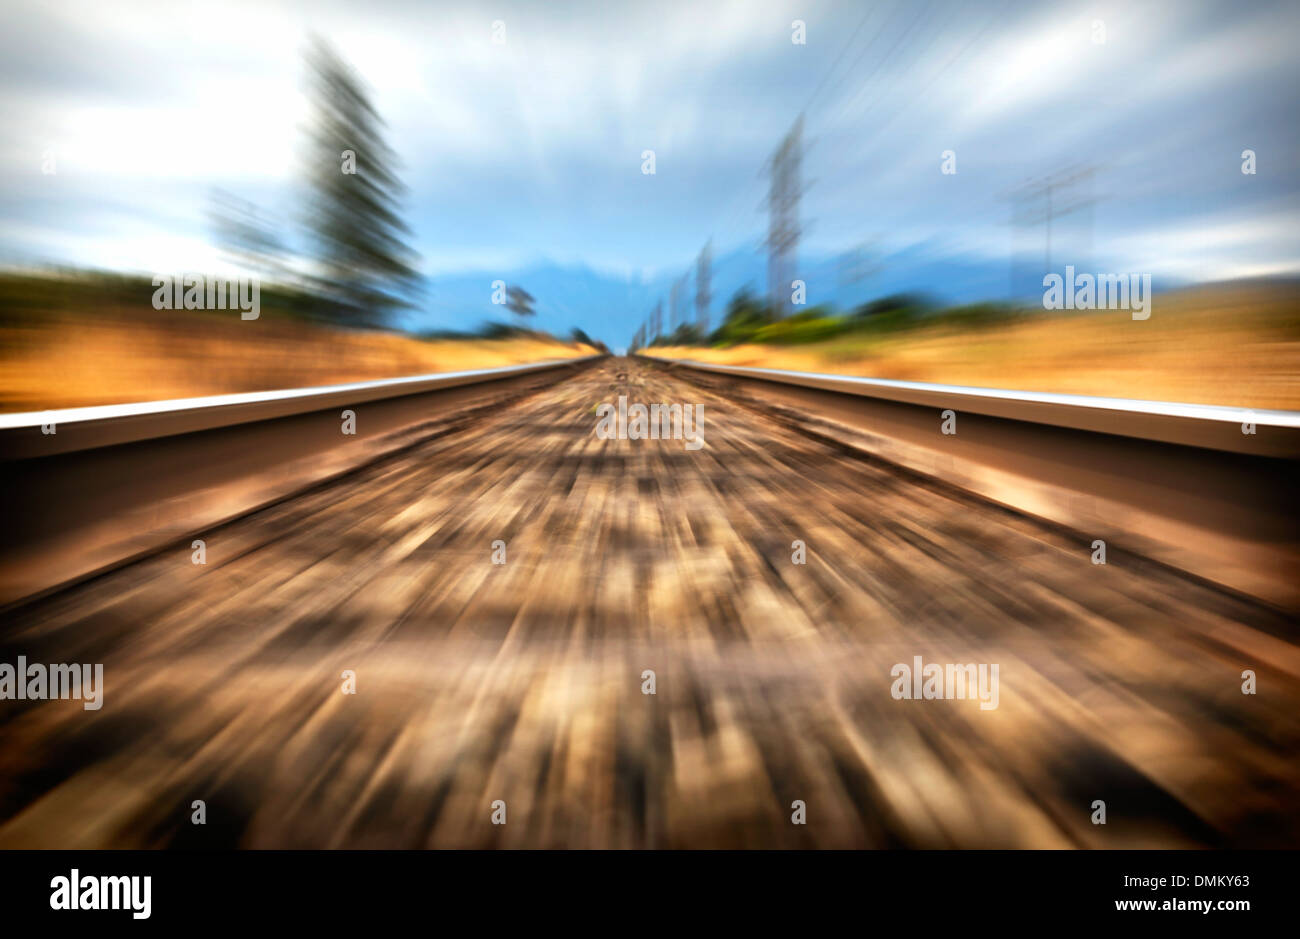 A high speed view between railway lines. - Stock Image